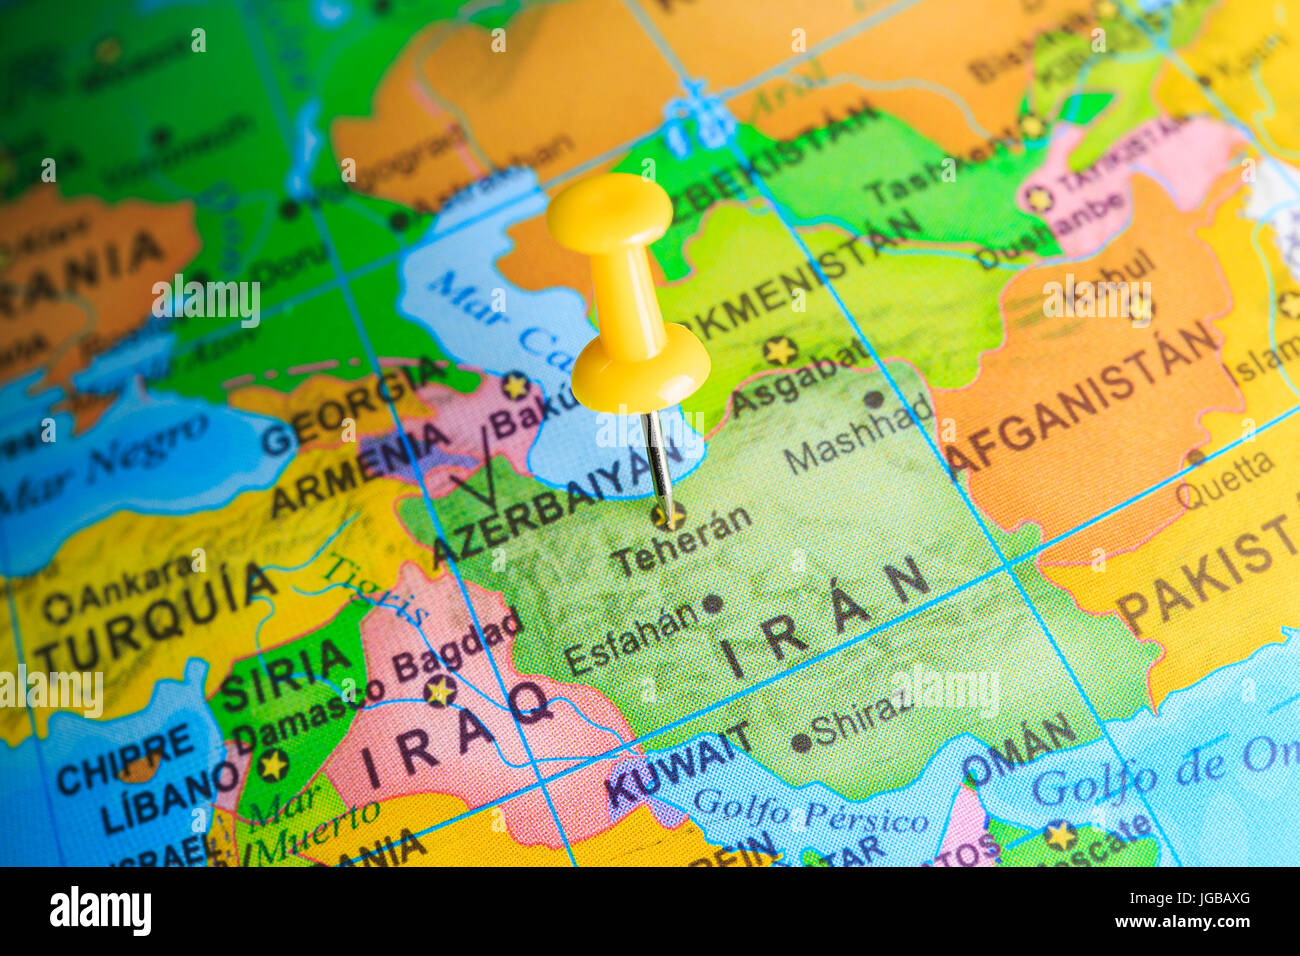 Iran pinned on a map of Asia - Stock Image